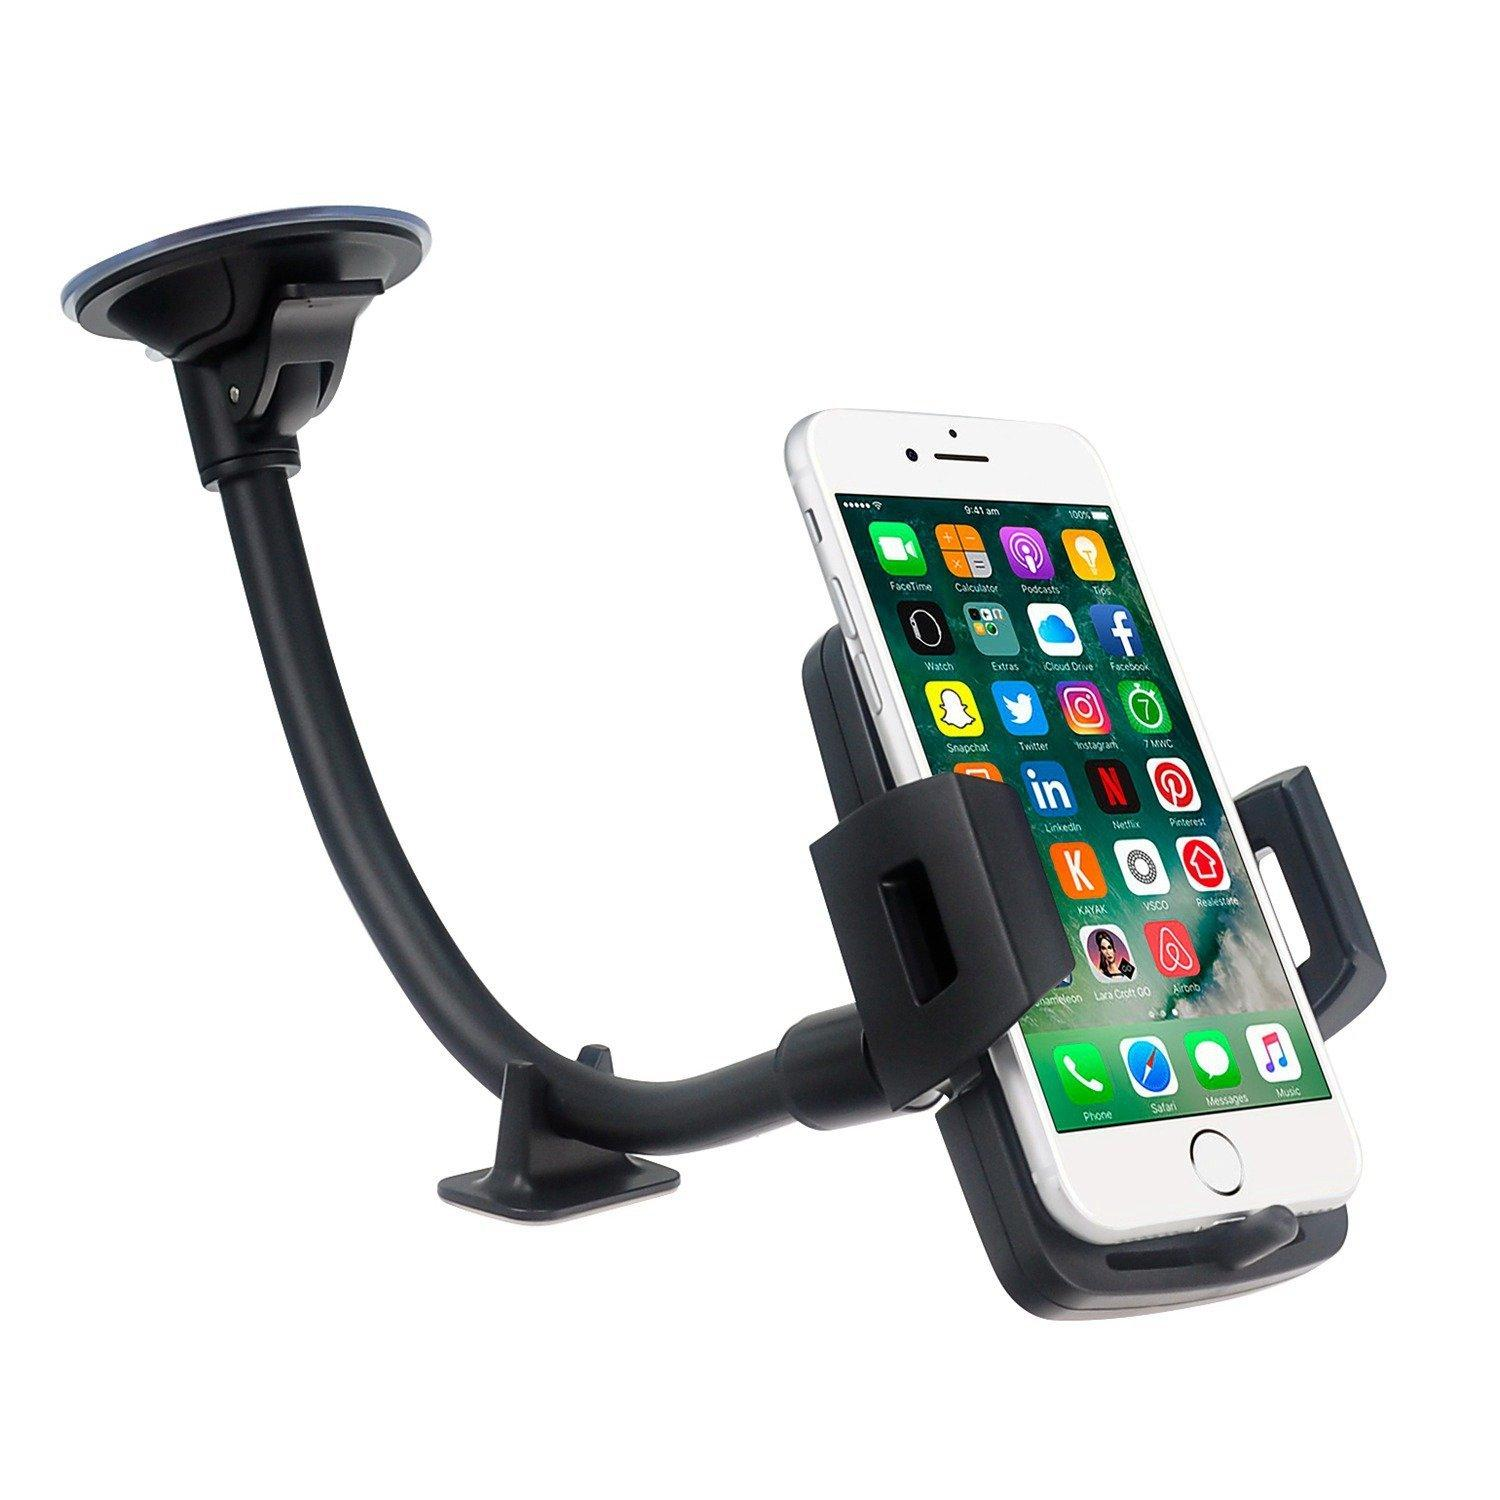 """Long Arm Car Truck phone iphone mount holder cradle for Smartphone(3.5"""" to 6.0"""") 5"""